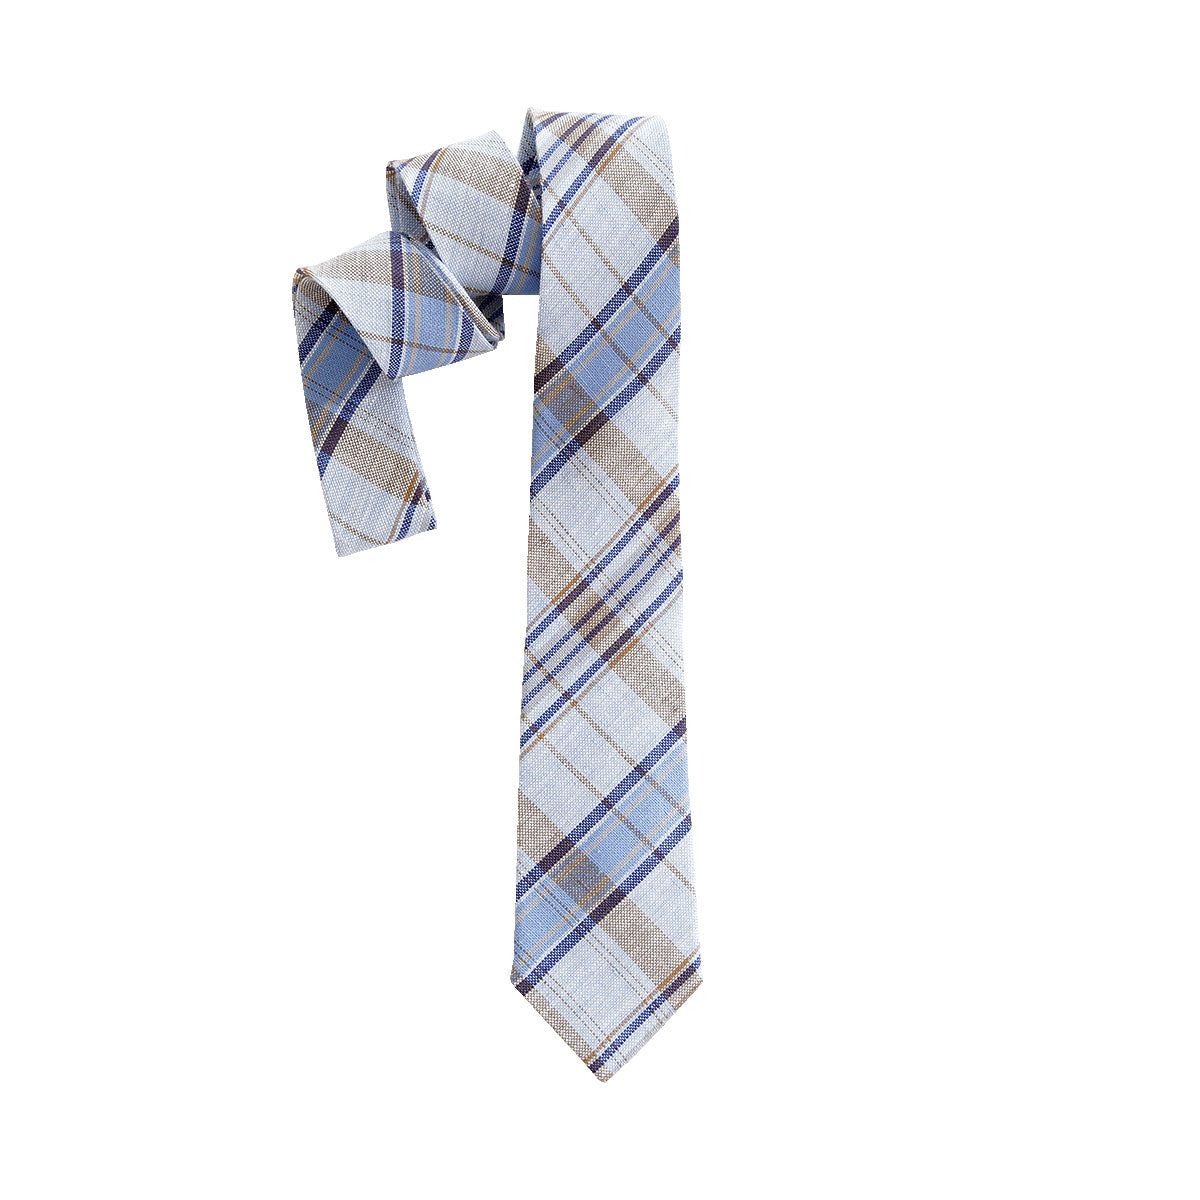 The Charter Necktie